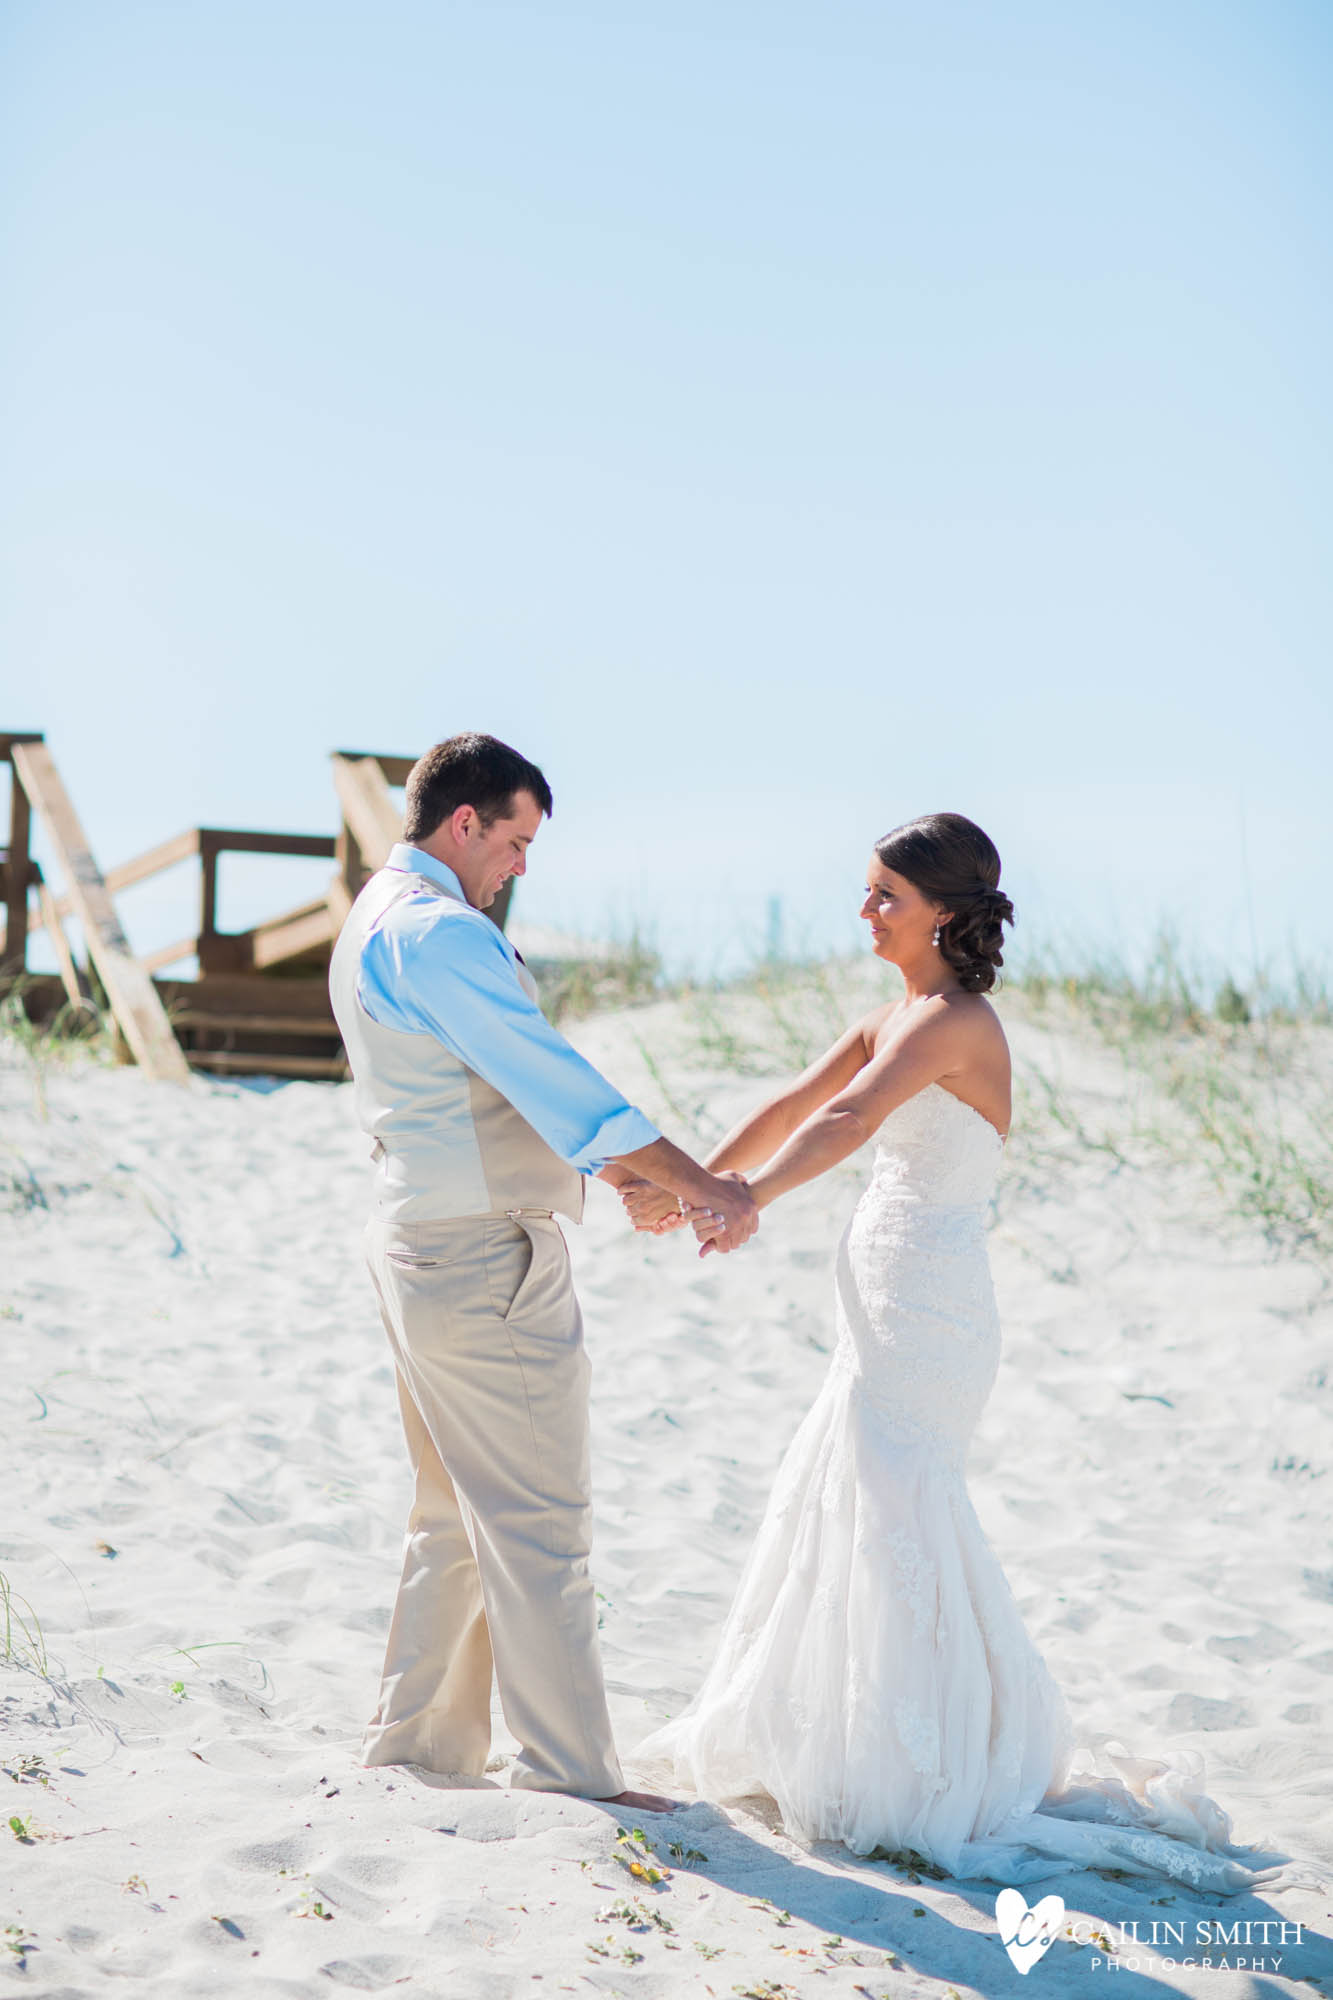 Kimberly_Ross_Amelia_Island_Wedding_Photography_019.jpg